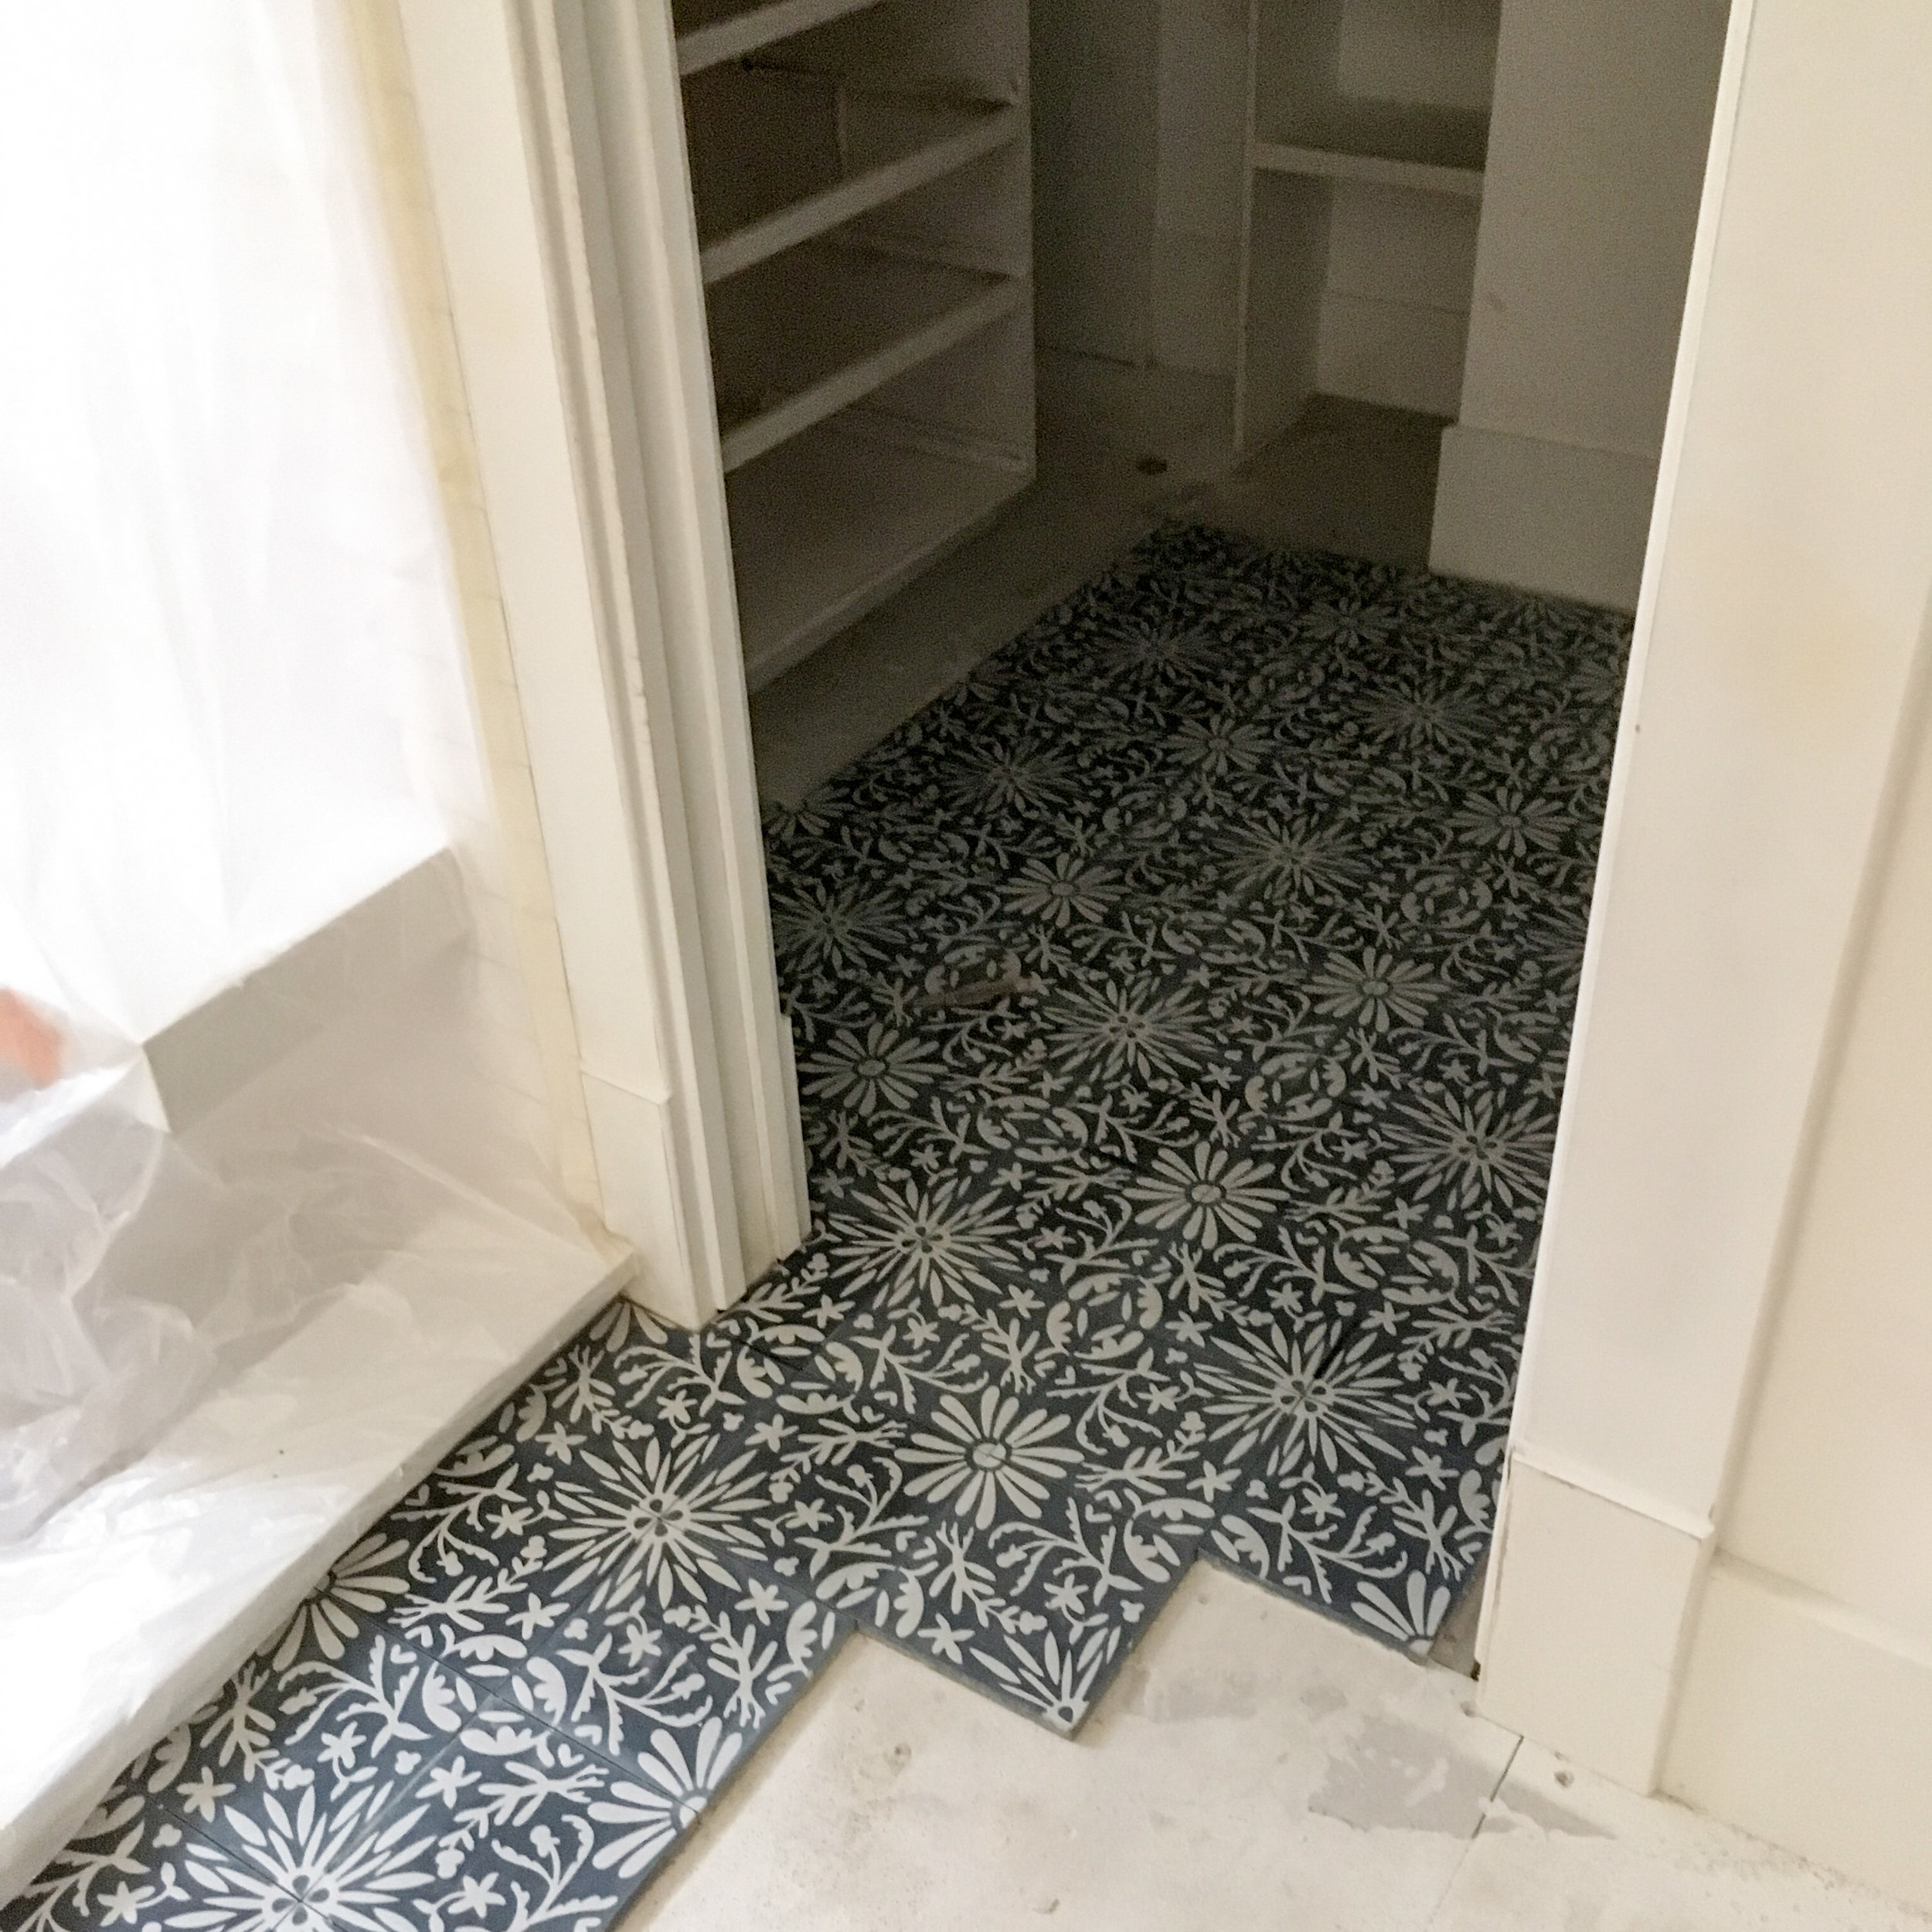 master bath floor tile.JPG